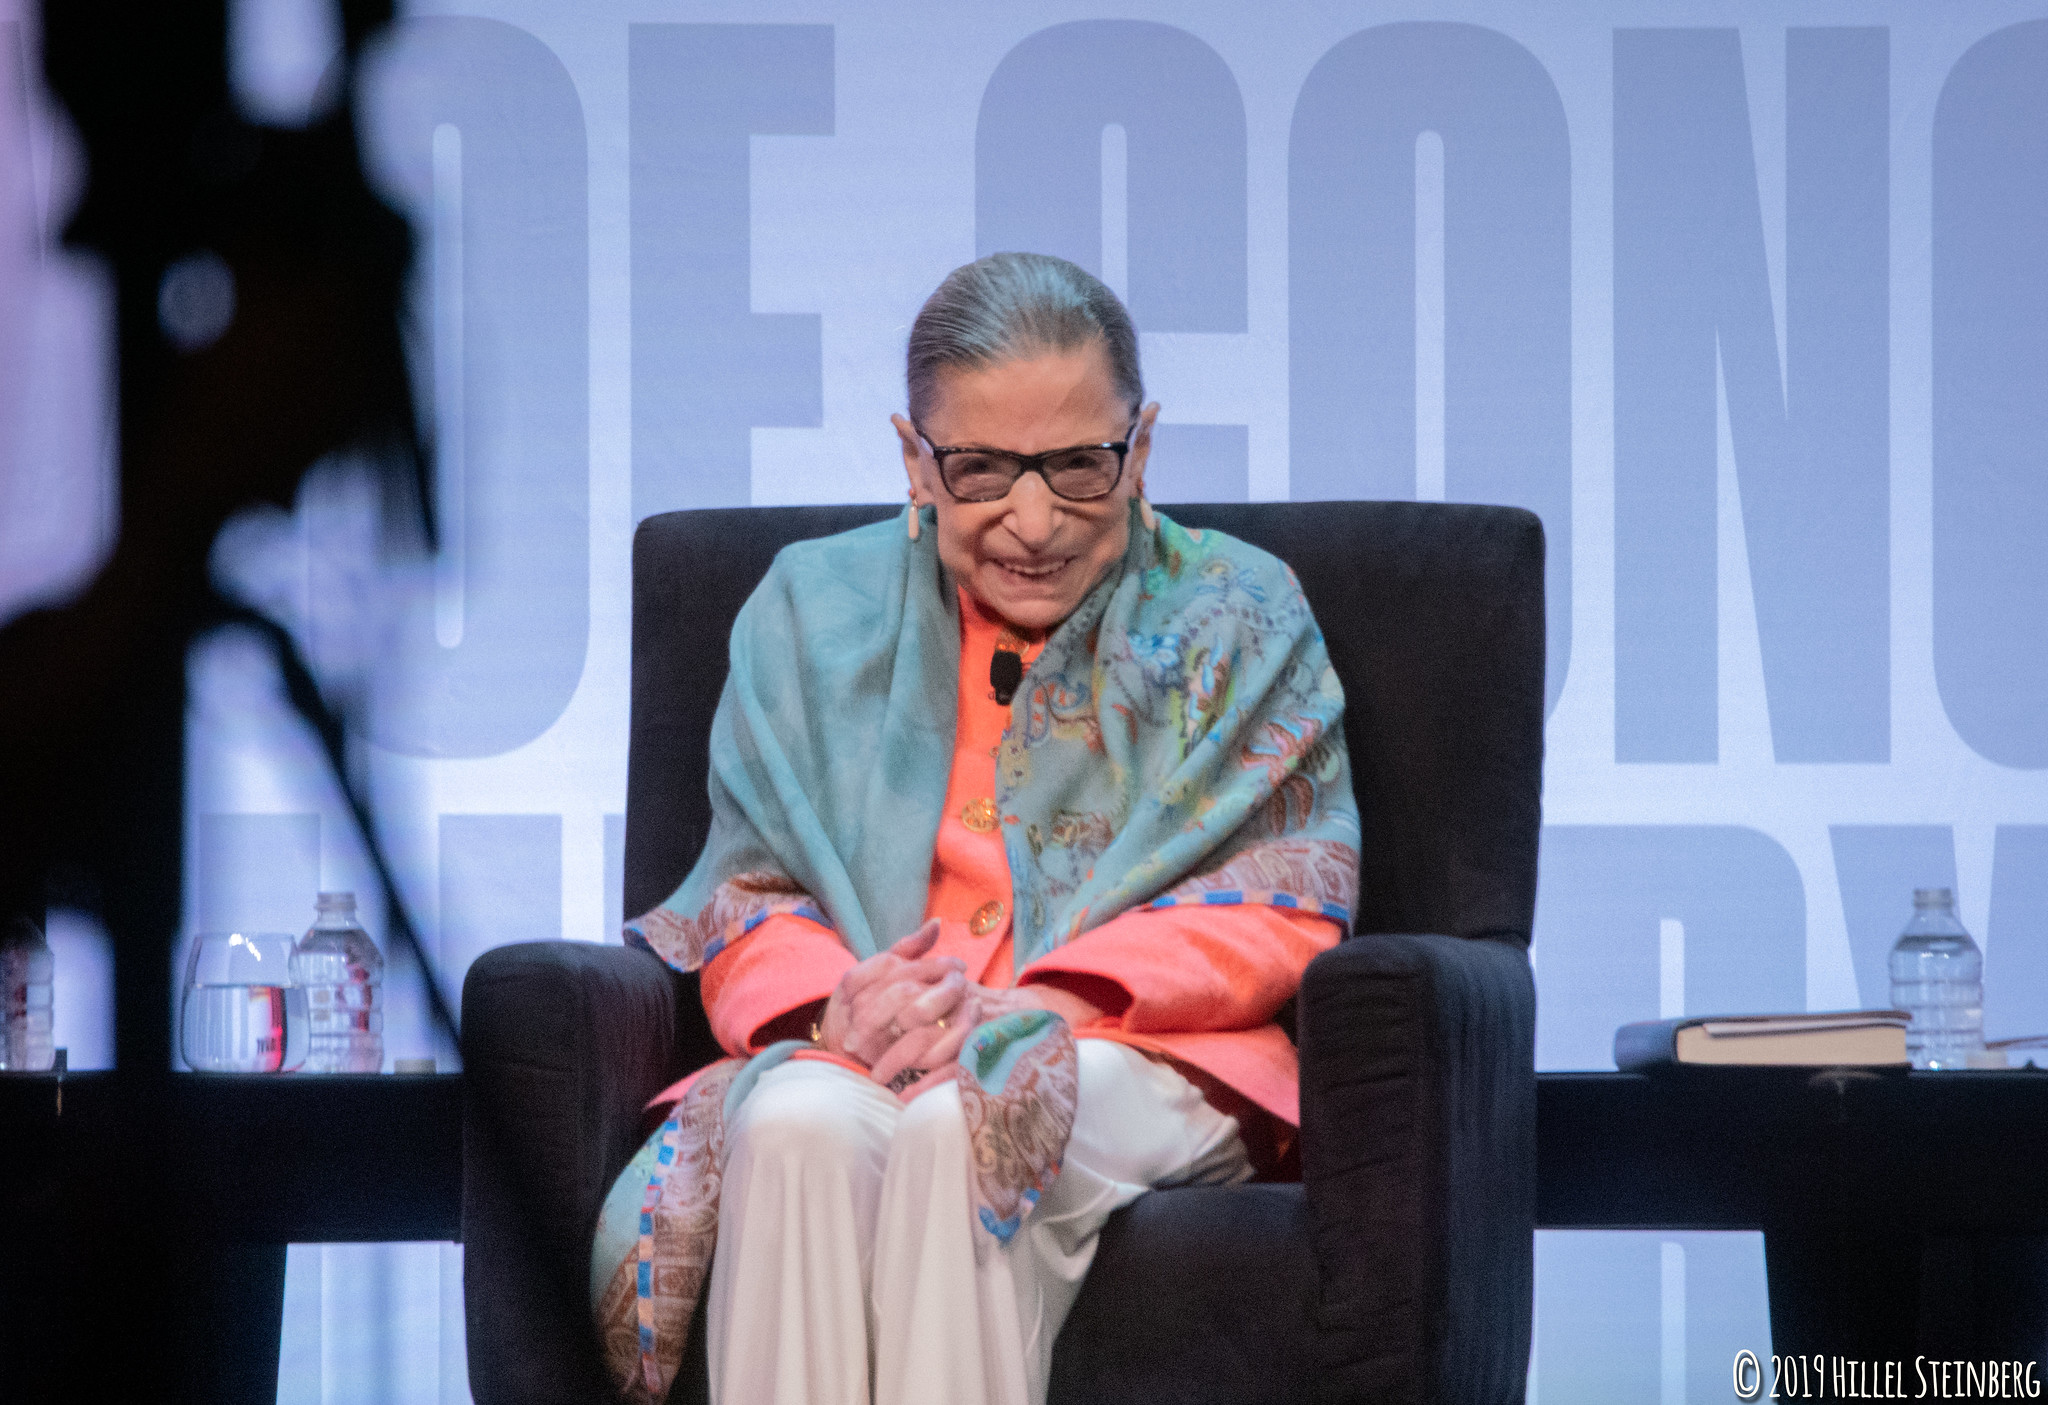 7 ways that Ruth Bader Ginsburg was nothing but a liberal colonizer